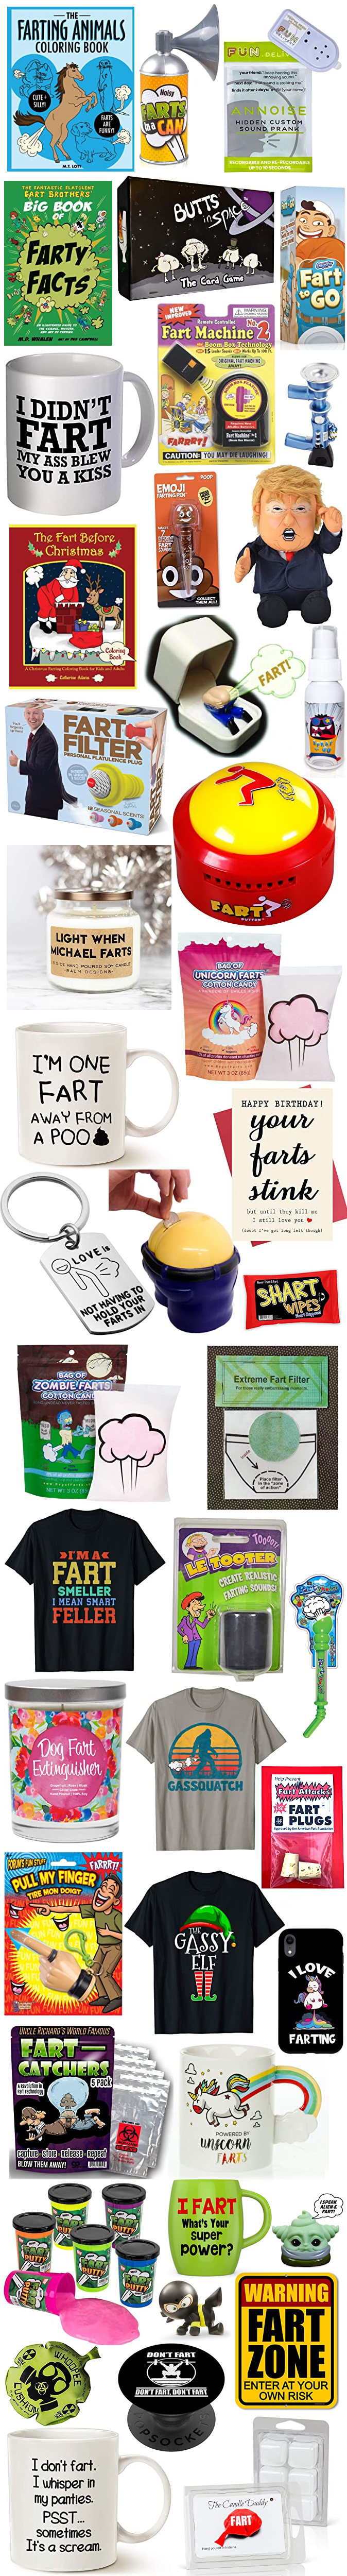 THE BEST FUNNY FART FARTING GIFTS EVER